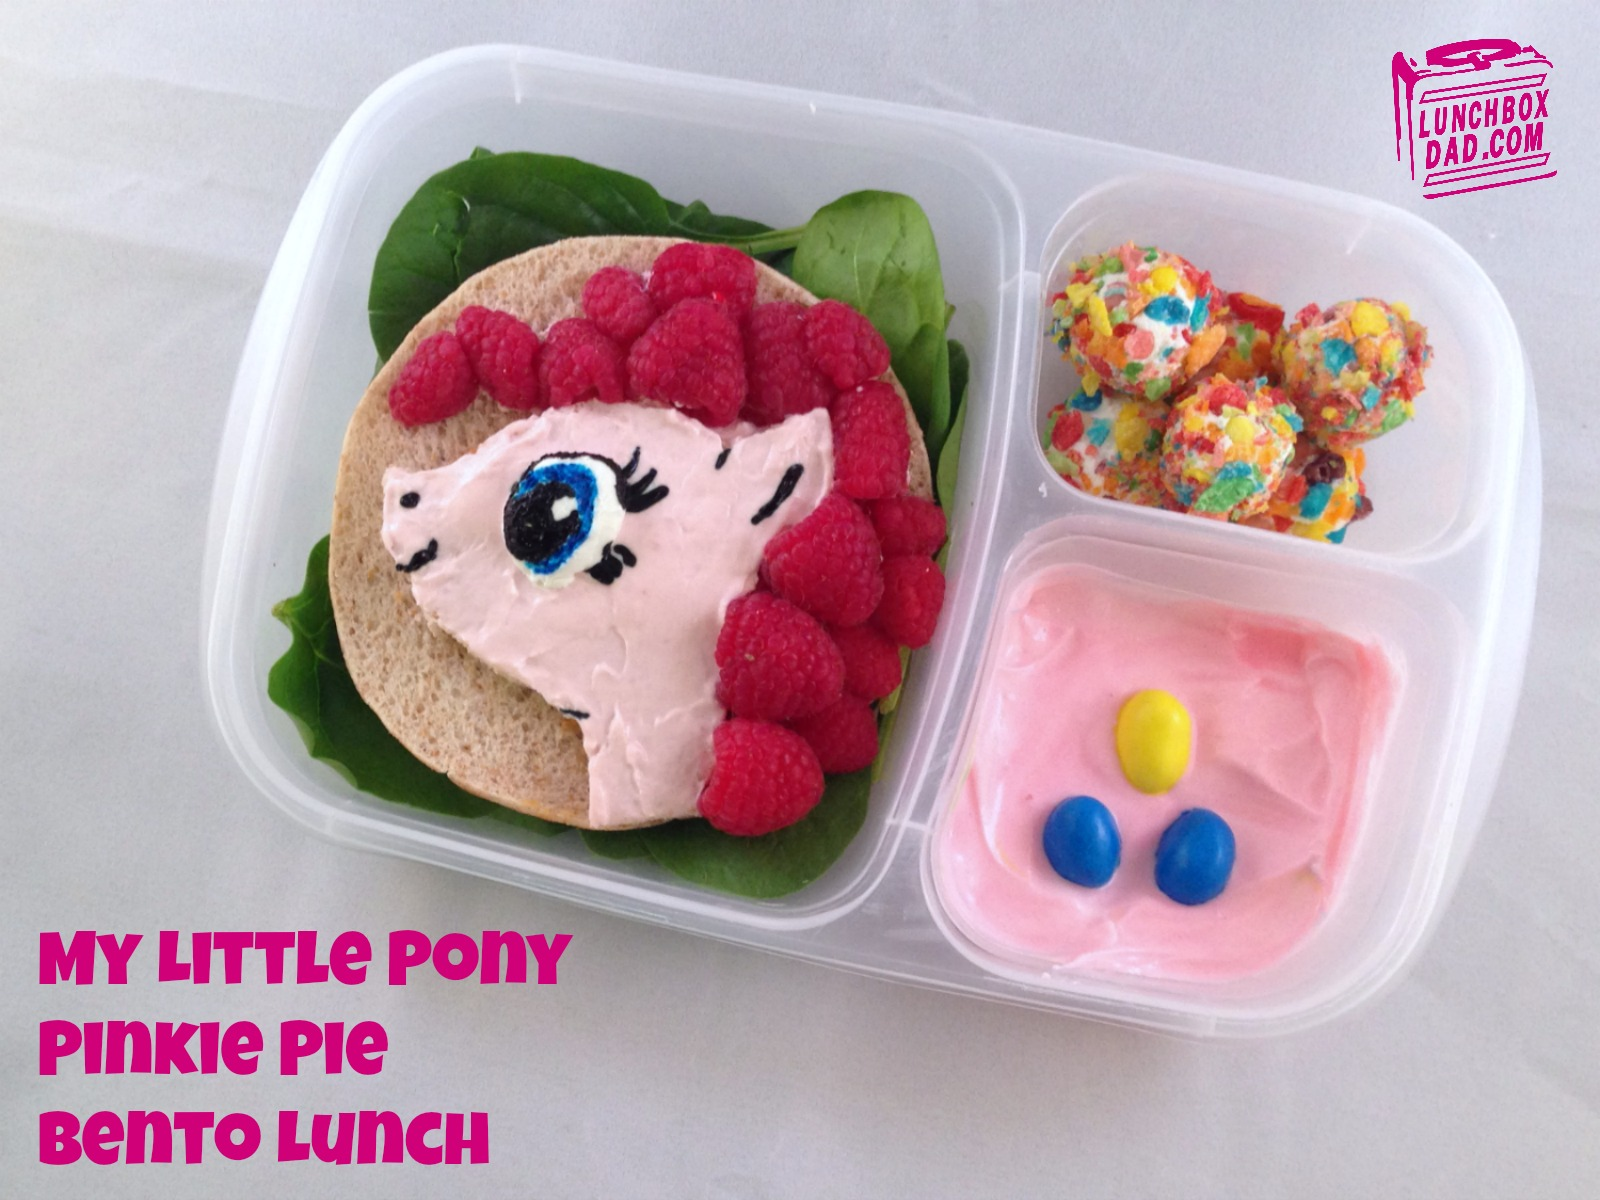 My Little Pony Pinkie Pie Lunch